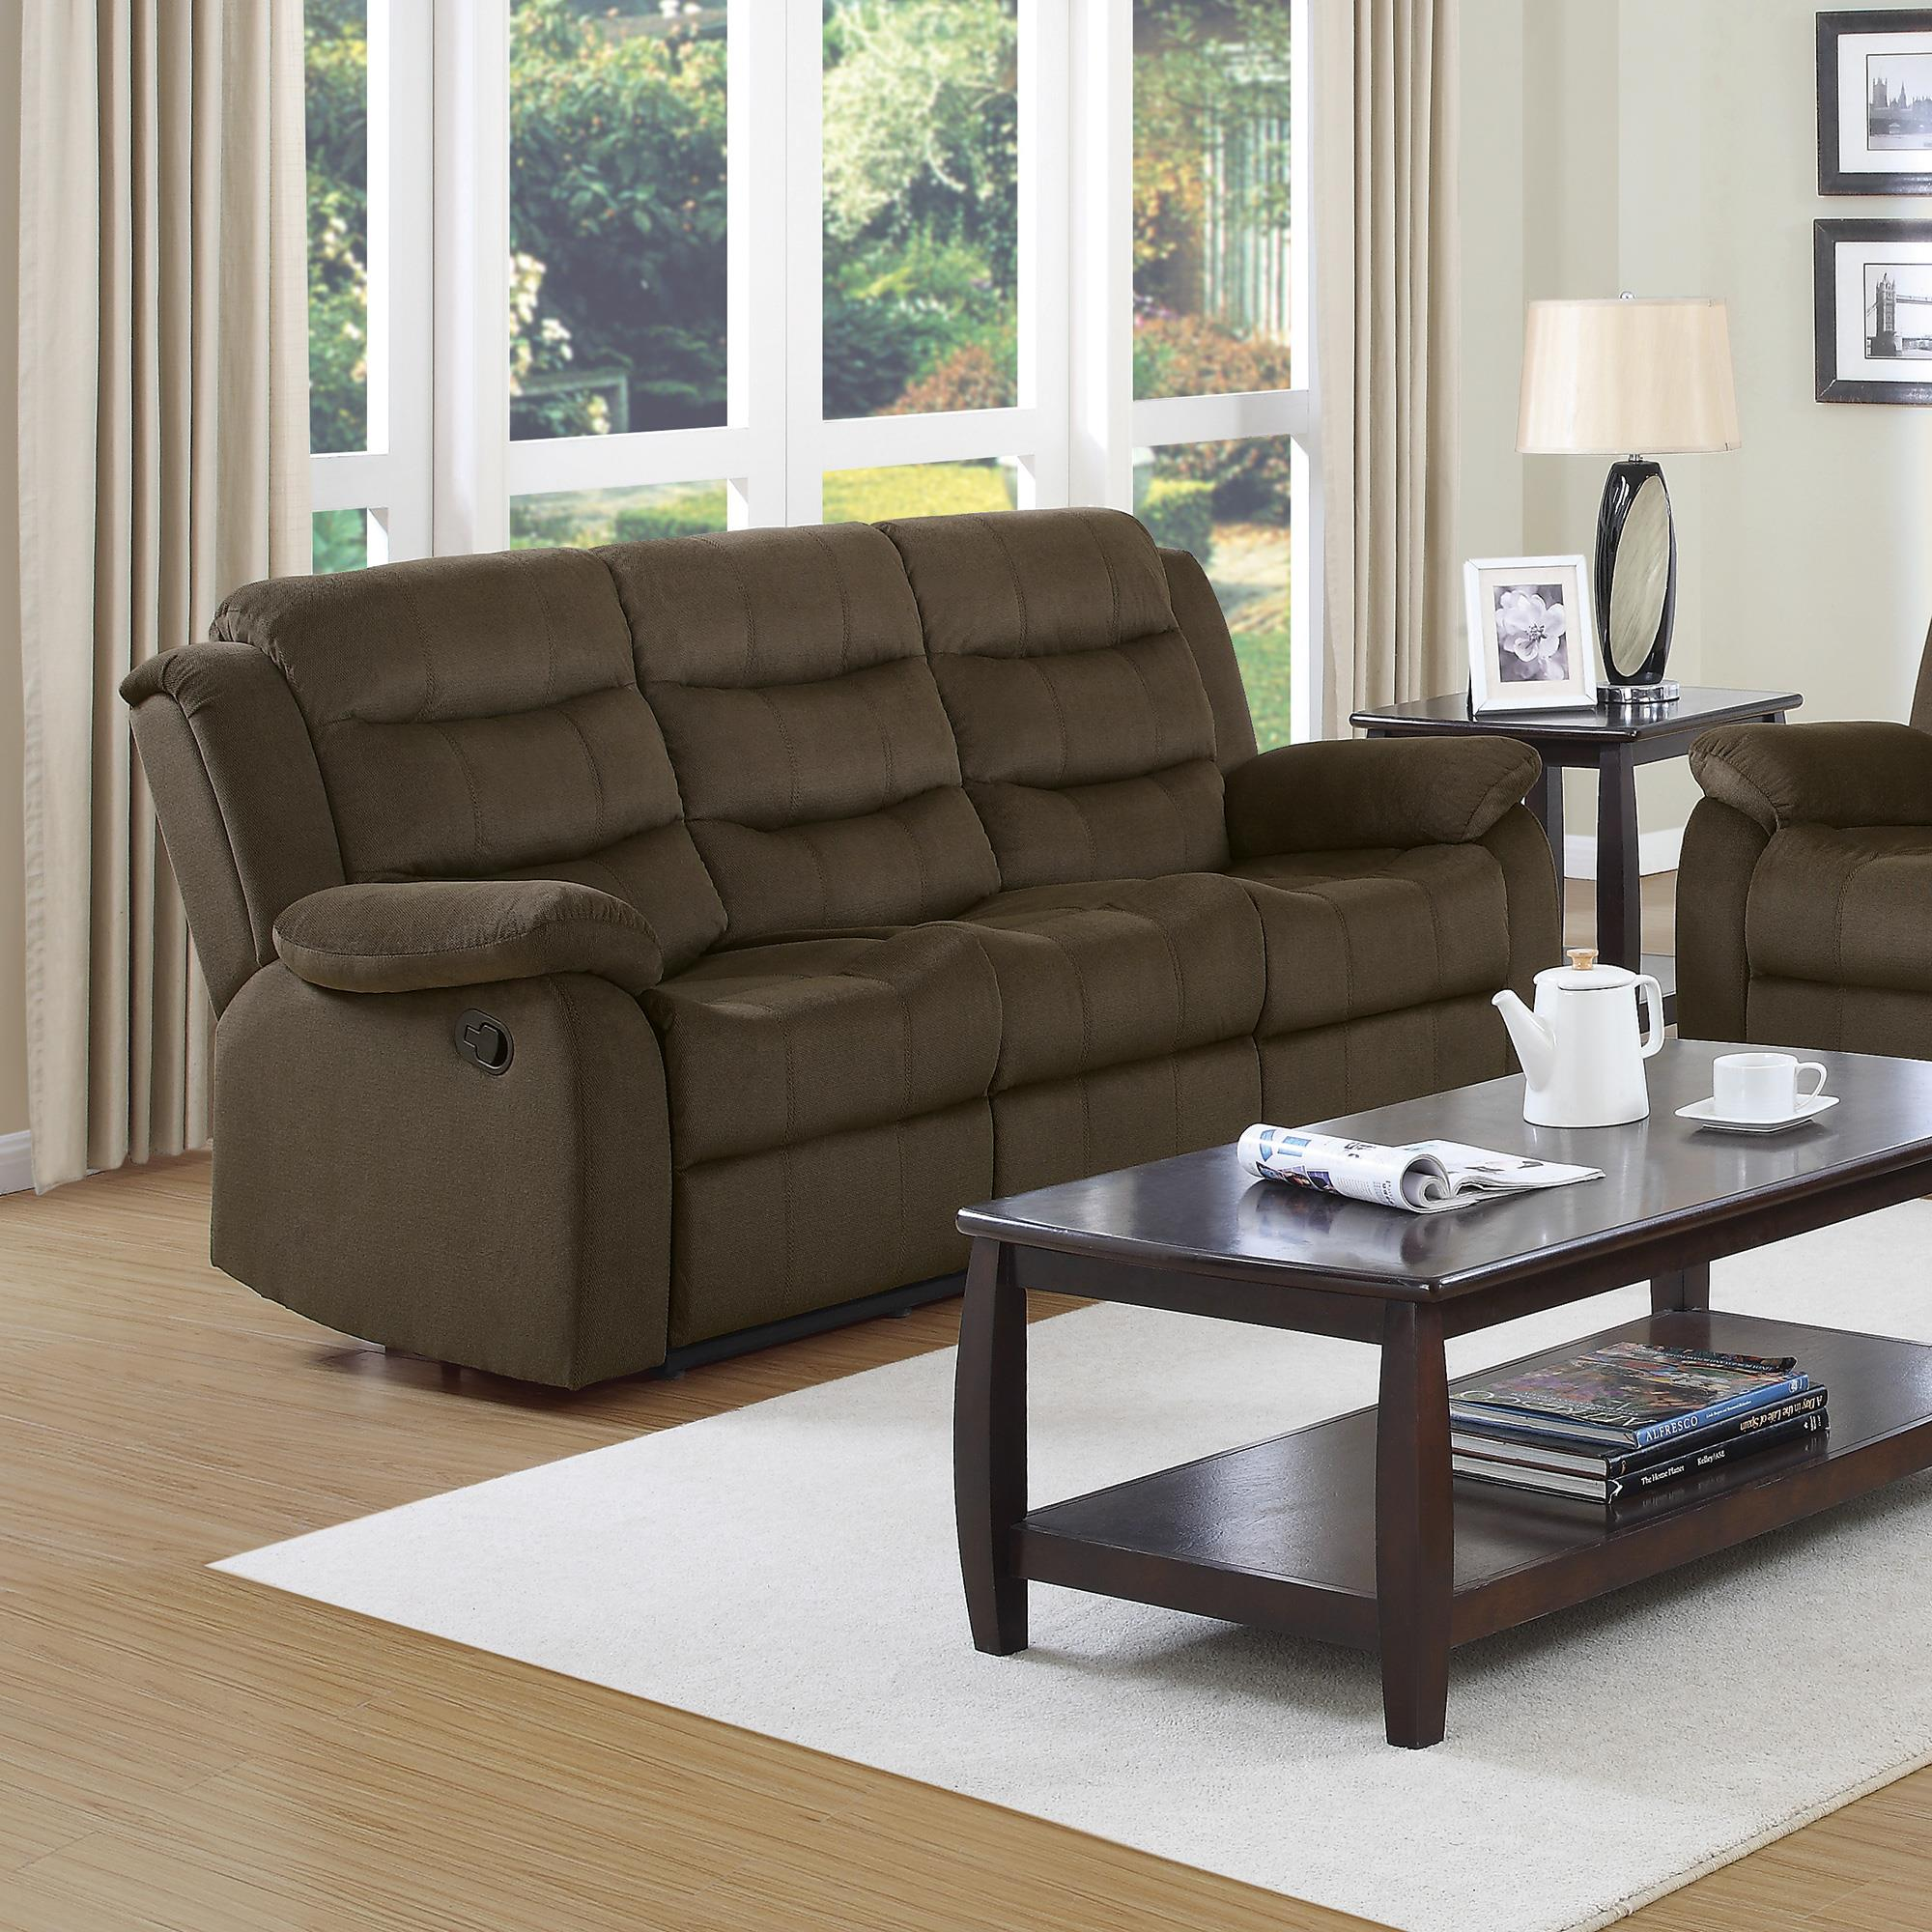 Rodman Casual Motion Sofa With Pillow Arms Quality